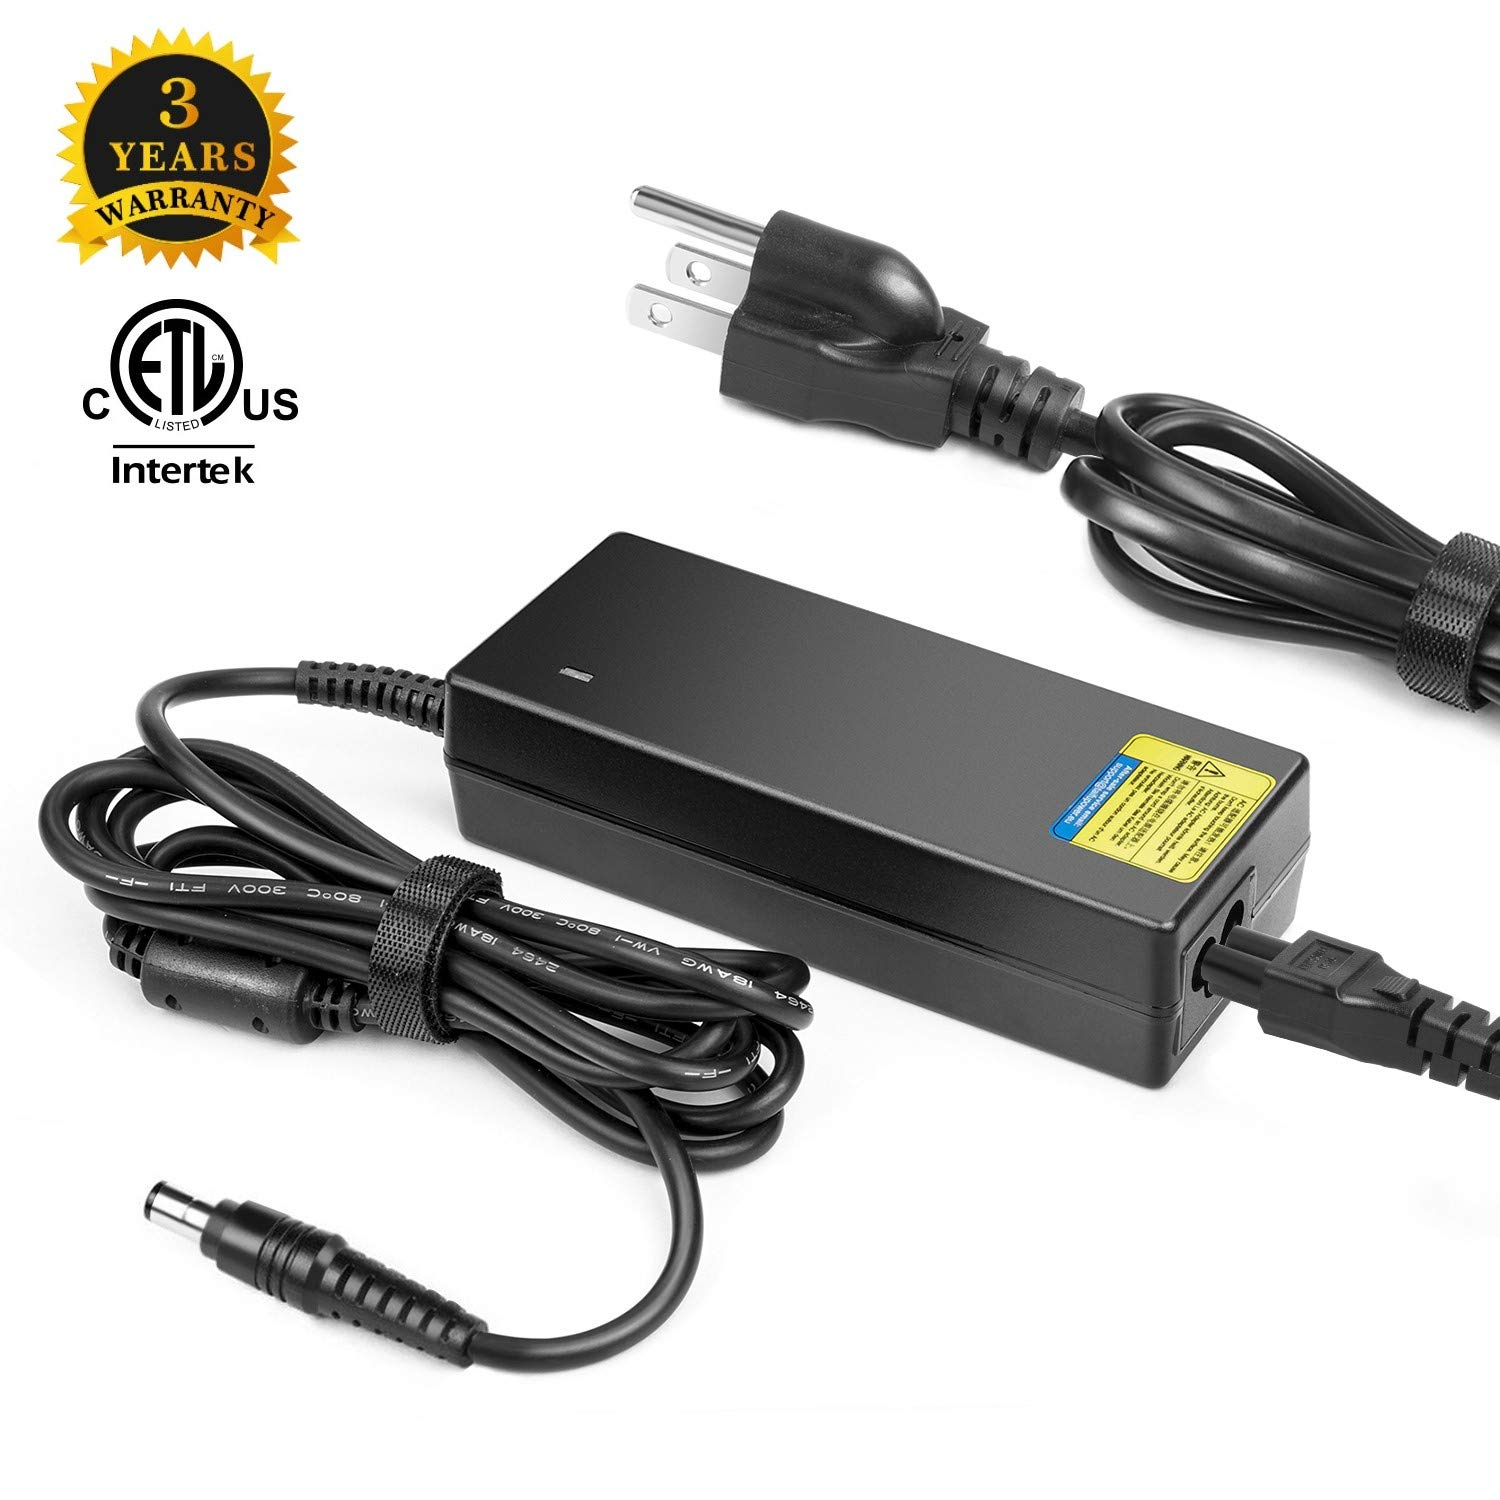 TAIFU 24V AC Adapter Charger for Zebra Barcode Printer GX430 GX420 GT800 GT820 GX420d Gk-420d Part Number :808101-001 9NA1000100 by TAIFU (Image #1)